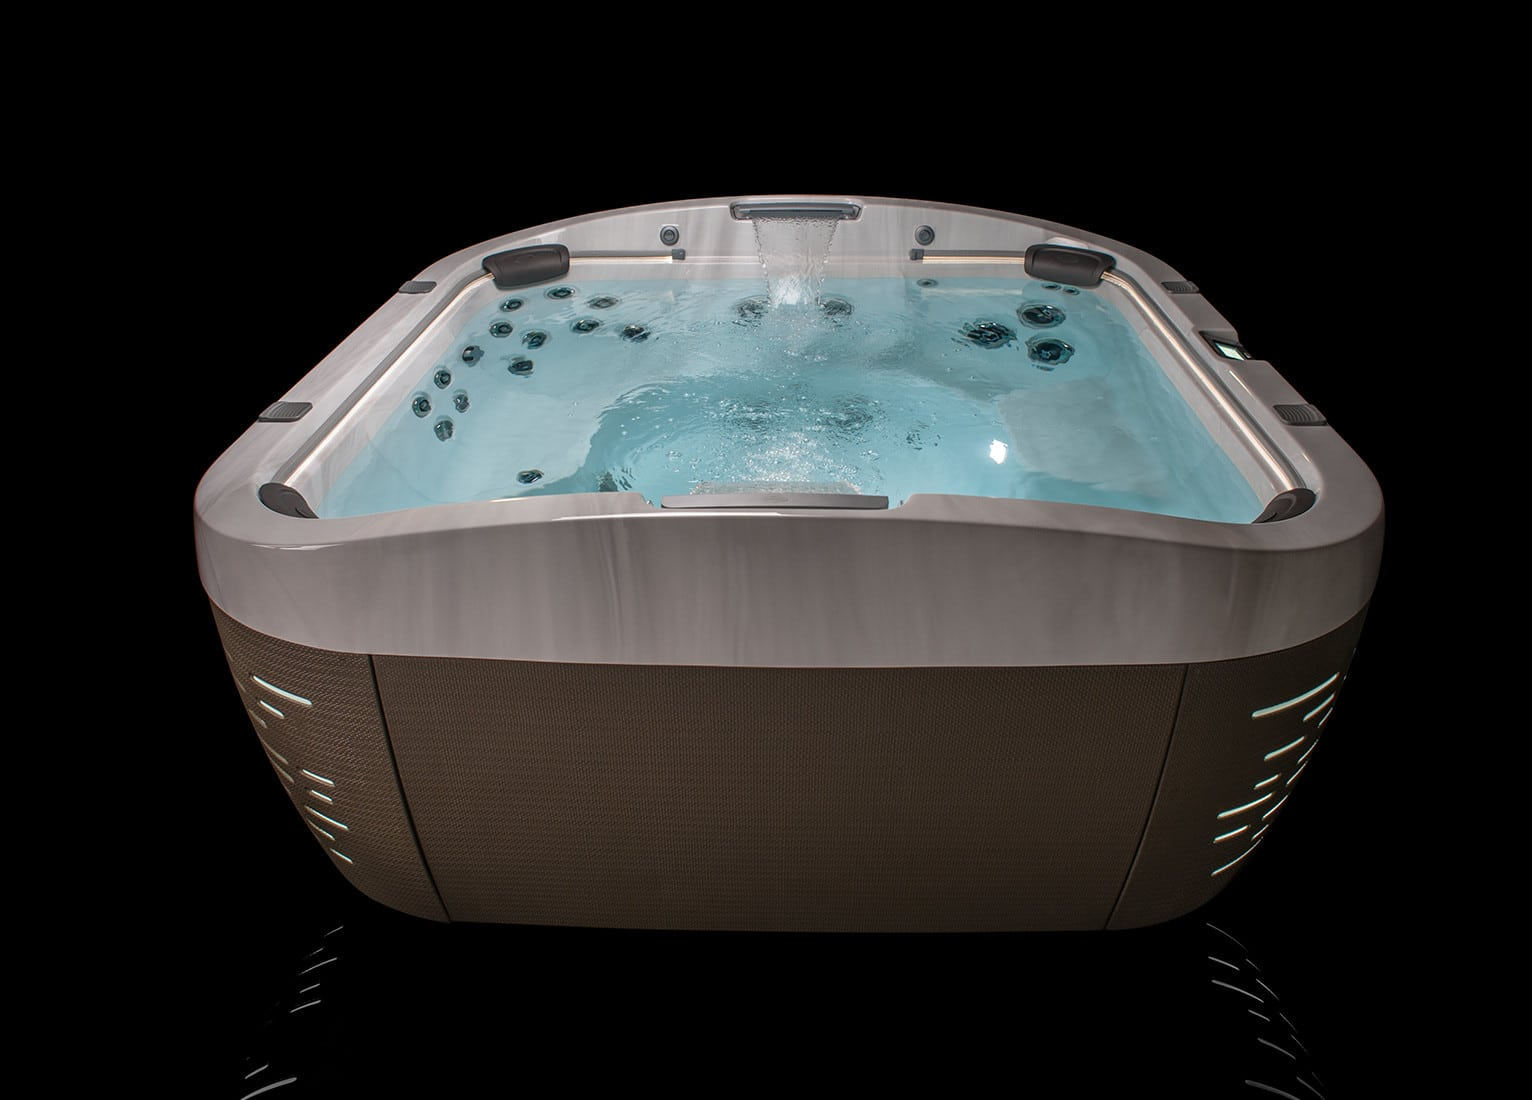 spas of miami features jacuzzi pool florida all services spa salon center reviews tubs repair our sundance hot tub